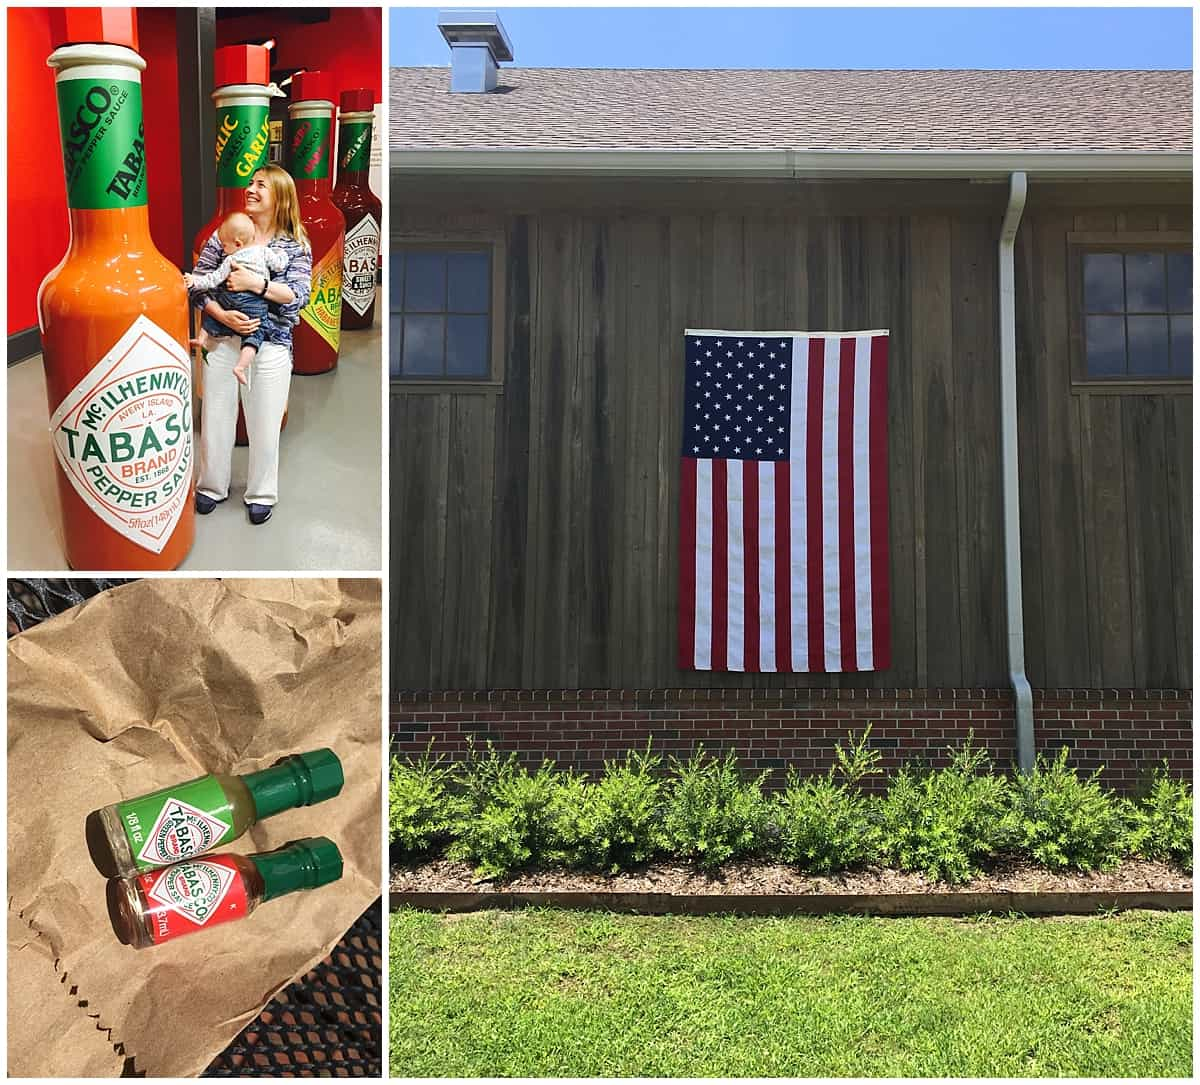 Visiting the tabasco factory on Avery Island in Louisiana`